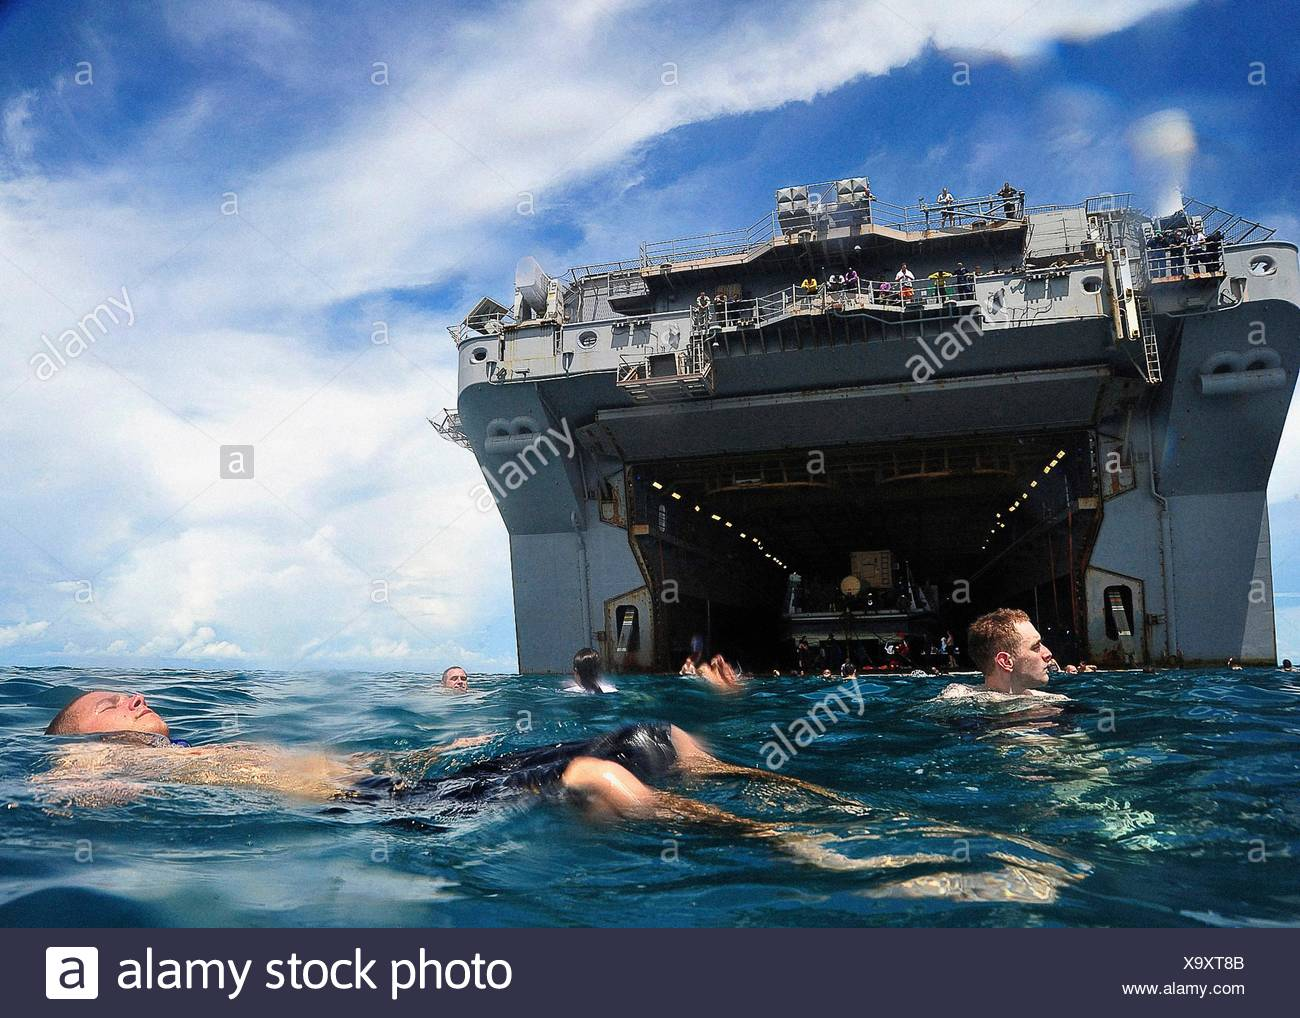 CARIBBEAN SEA Sept  22, 2010 Service members embarked aboard the multipurpose amphibious assault ship USS Iwo Jima LHD 7 - Stock Image